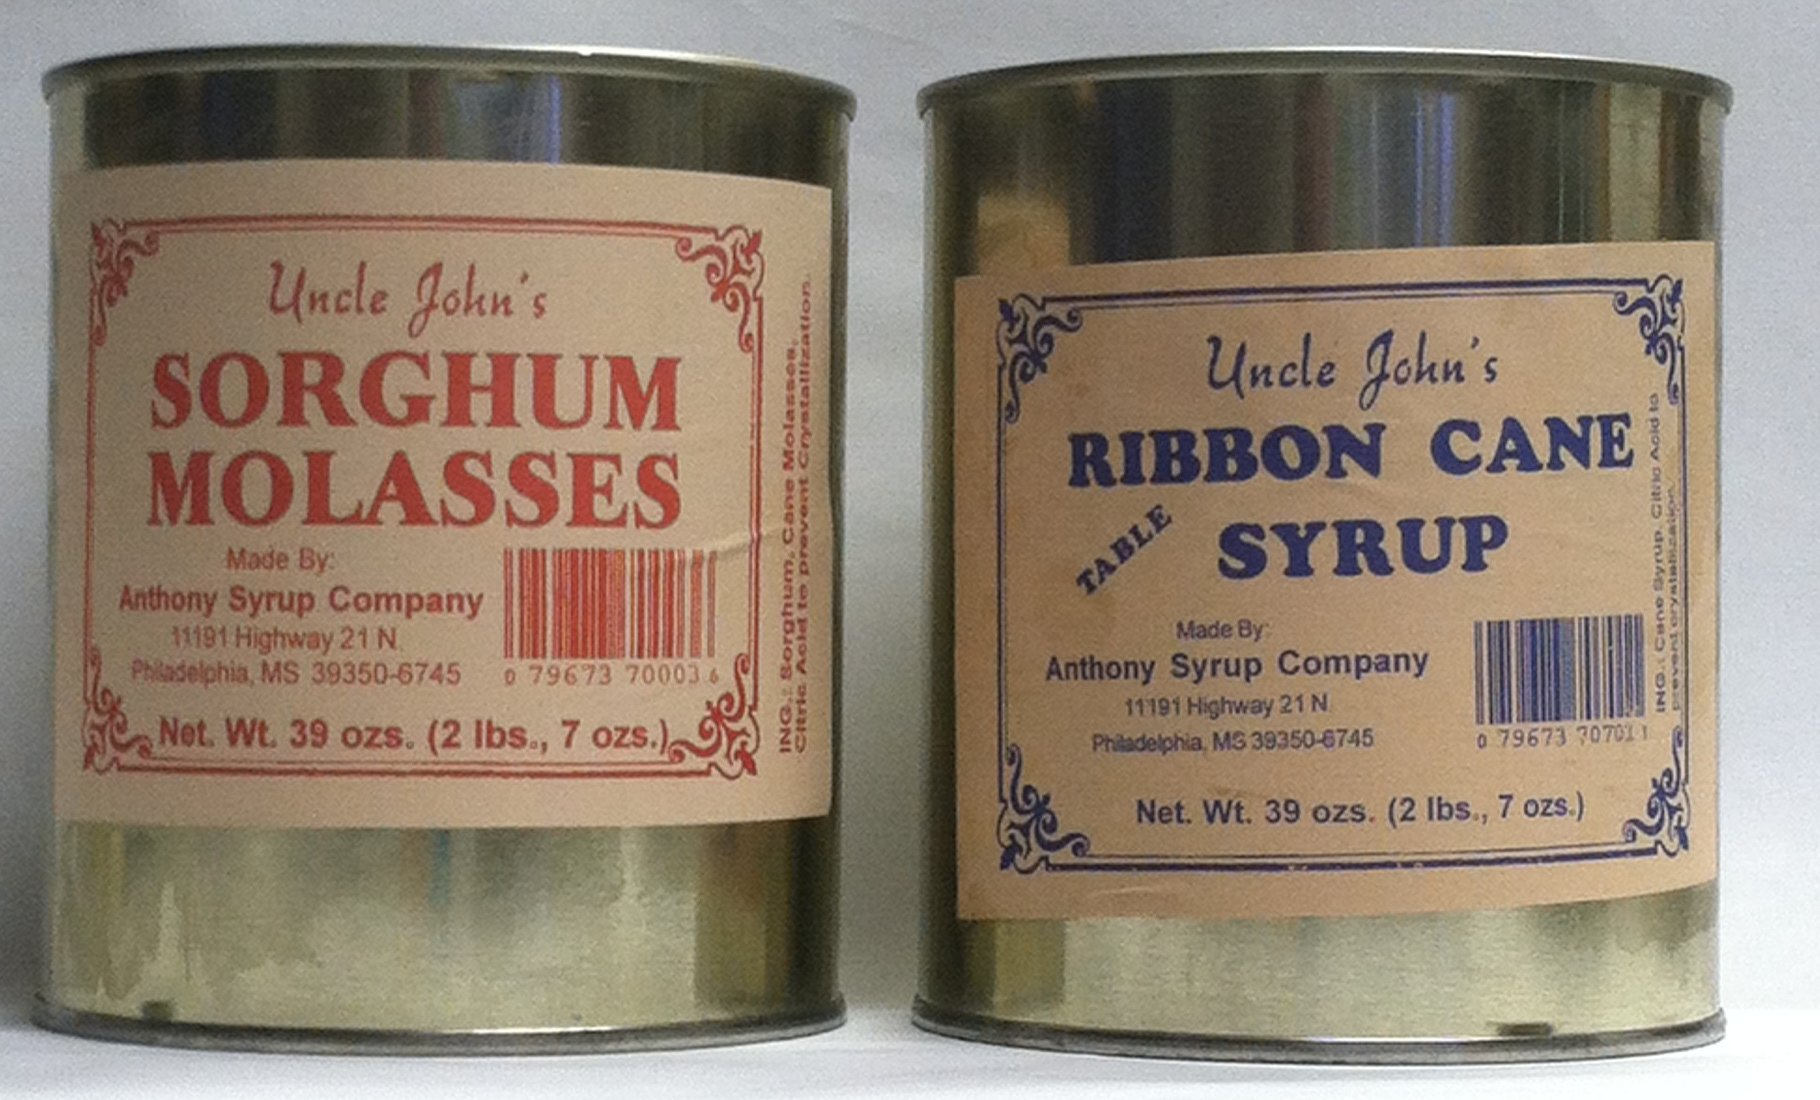 Uncle Johns Ribbon Cane Table Syrup and Sorghum Molasses Sampler in Metal Cans 30 Fl OZS 2 Lb 7 OZS